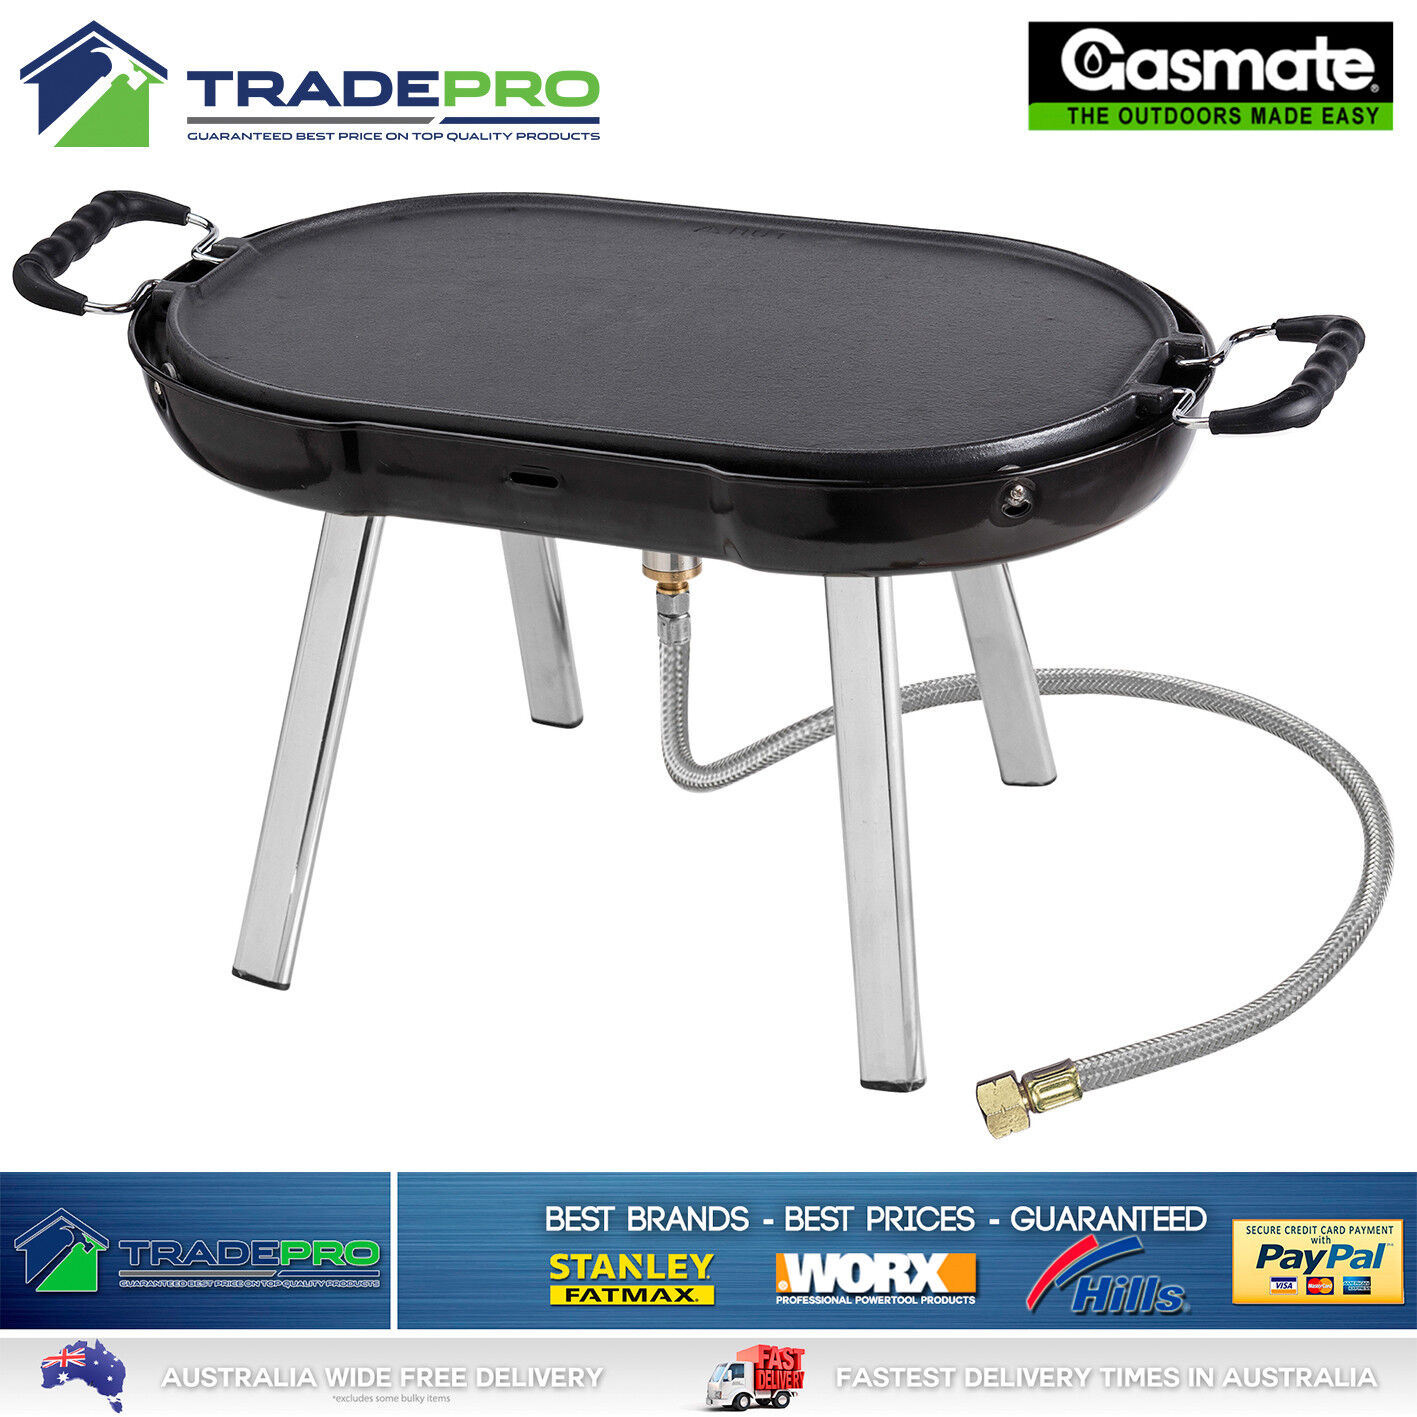 Portable BBQ Gas Barbecue Outdoor Camping PRO Grill Caravan Cooker